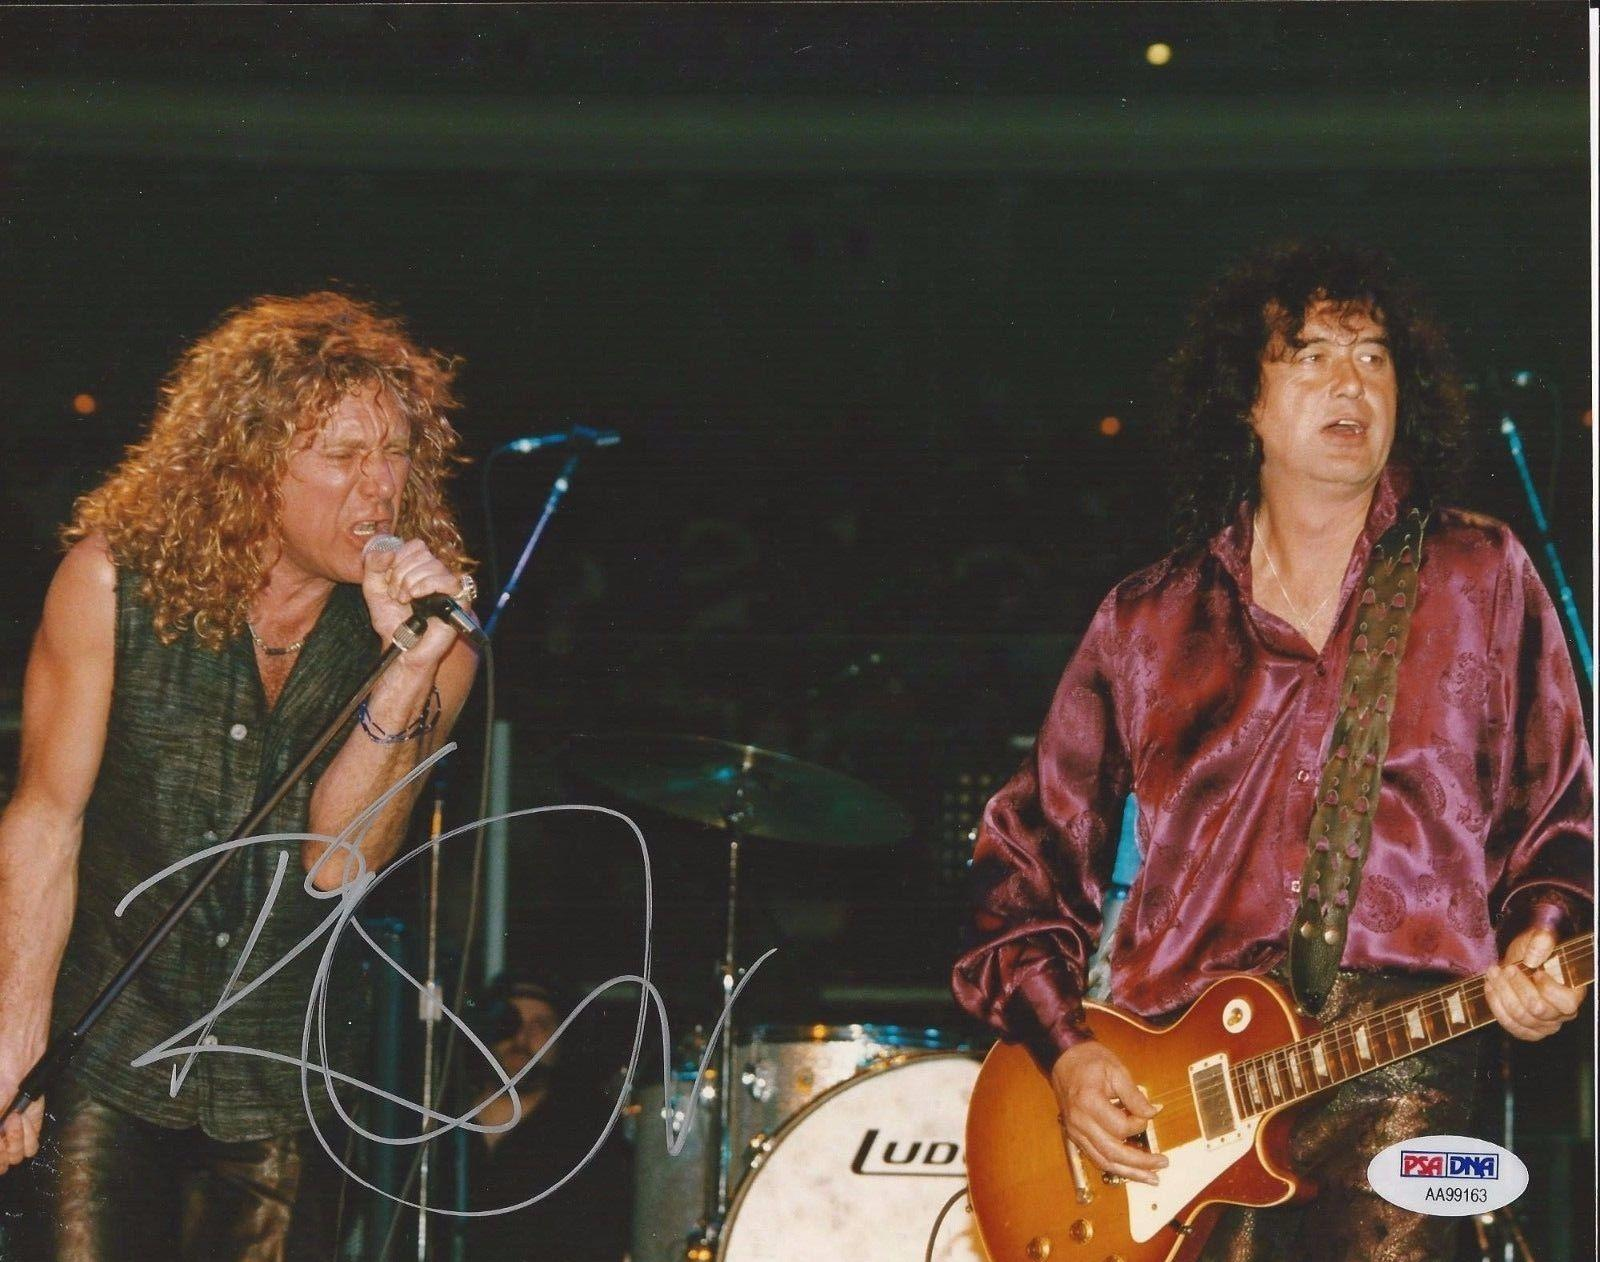 ROBERT PLANT Signed 8 x10 LED ZEPPELIN CONCERT PHOTO with PSA/DNA COA